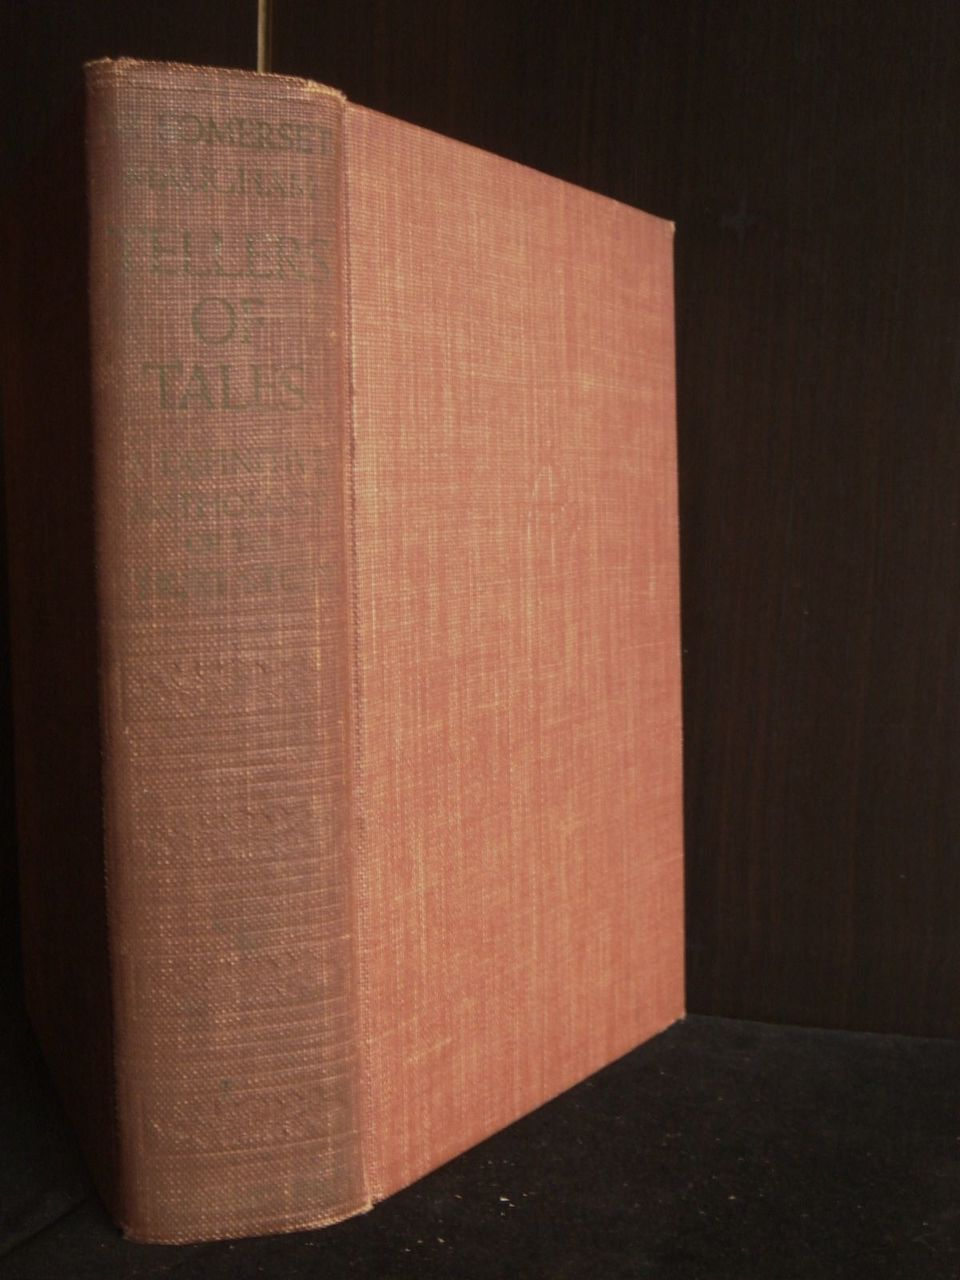 TELLER OF TALES, by Somerset Maugham - 1939